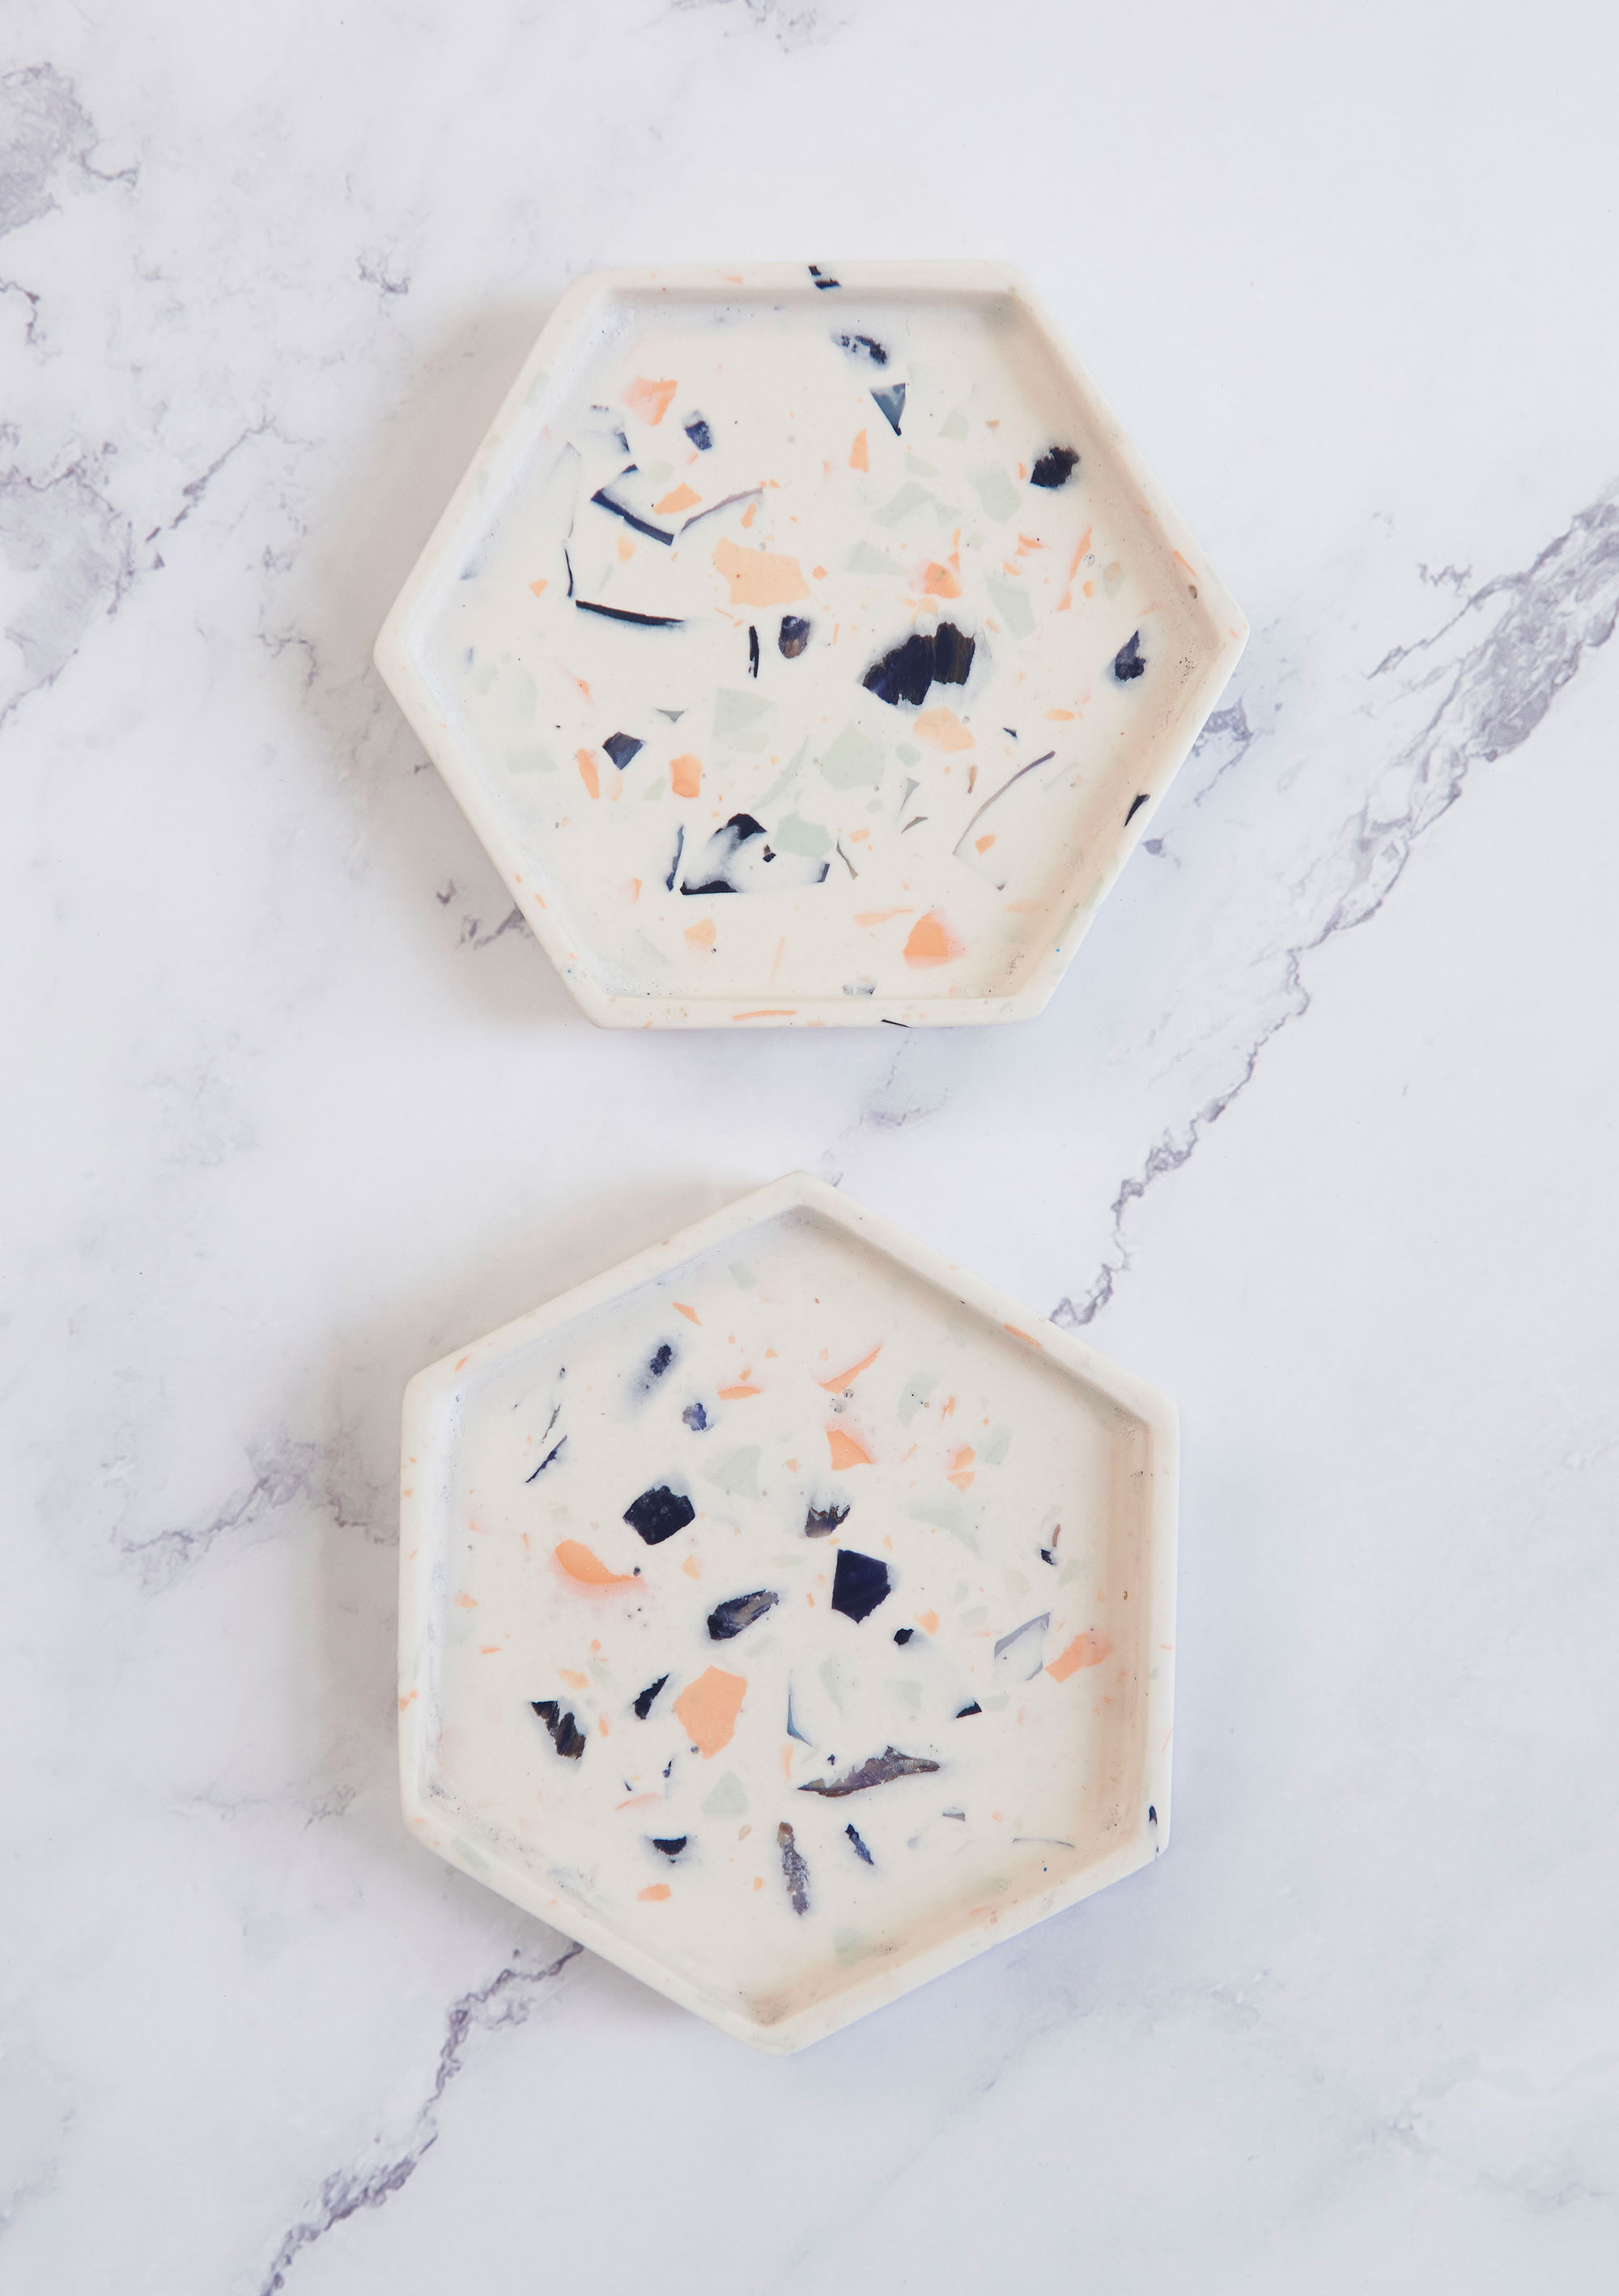 mint and white eco resin small trivet or coaster terrazzo coral